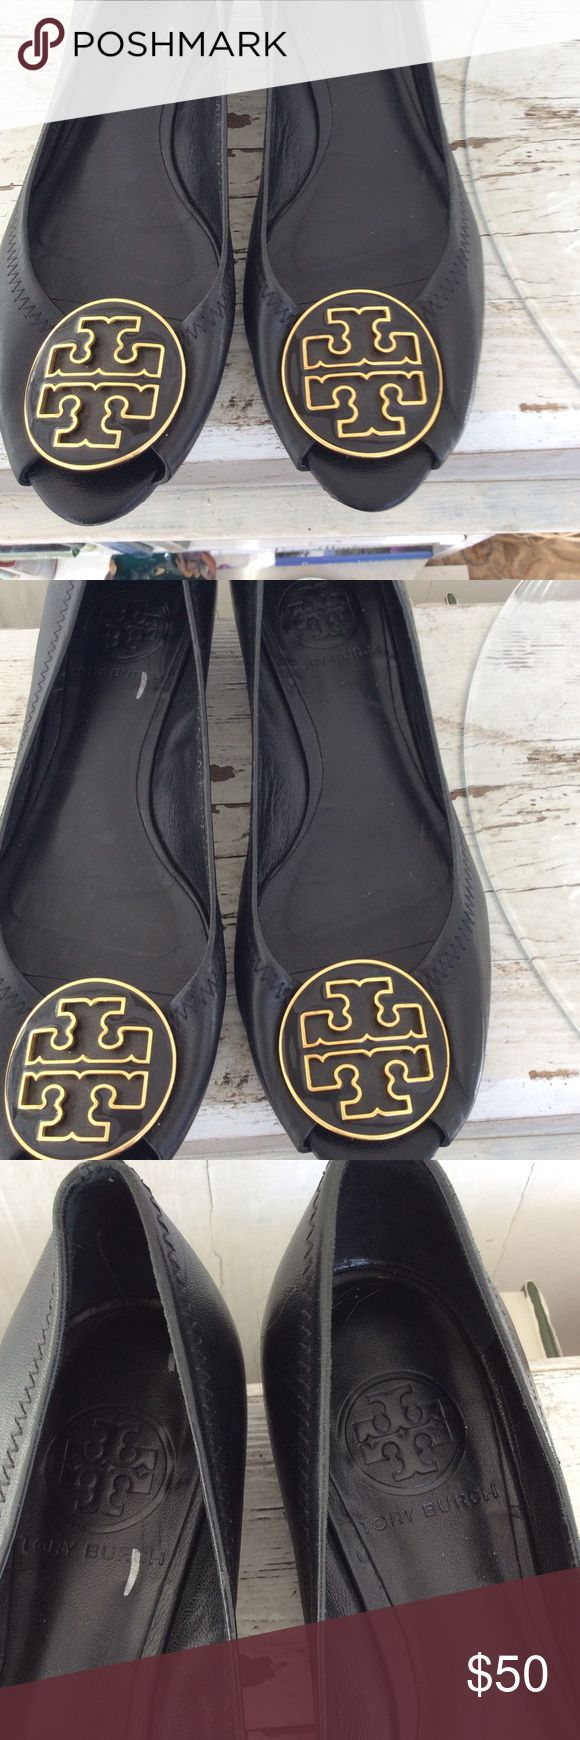 """Tory Burch open toe flats size 6 Black leather Tory Burch peep-toe flats with gold-tone logo accents at tops and stacked wedge heels. Heels: 1.25"""" Tory Burch Shoes Flats & Loafers"""